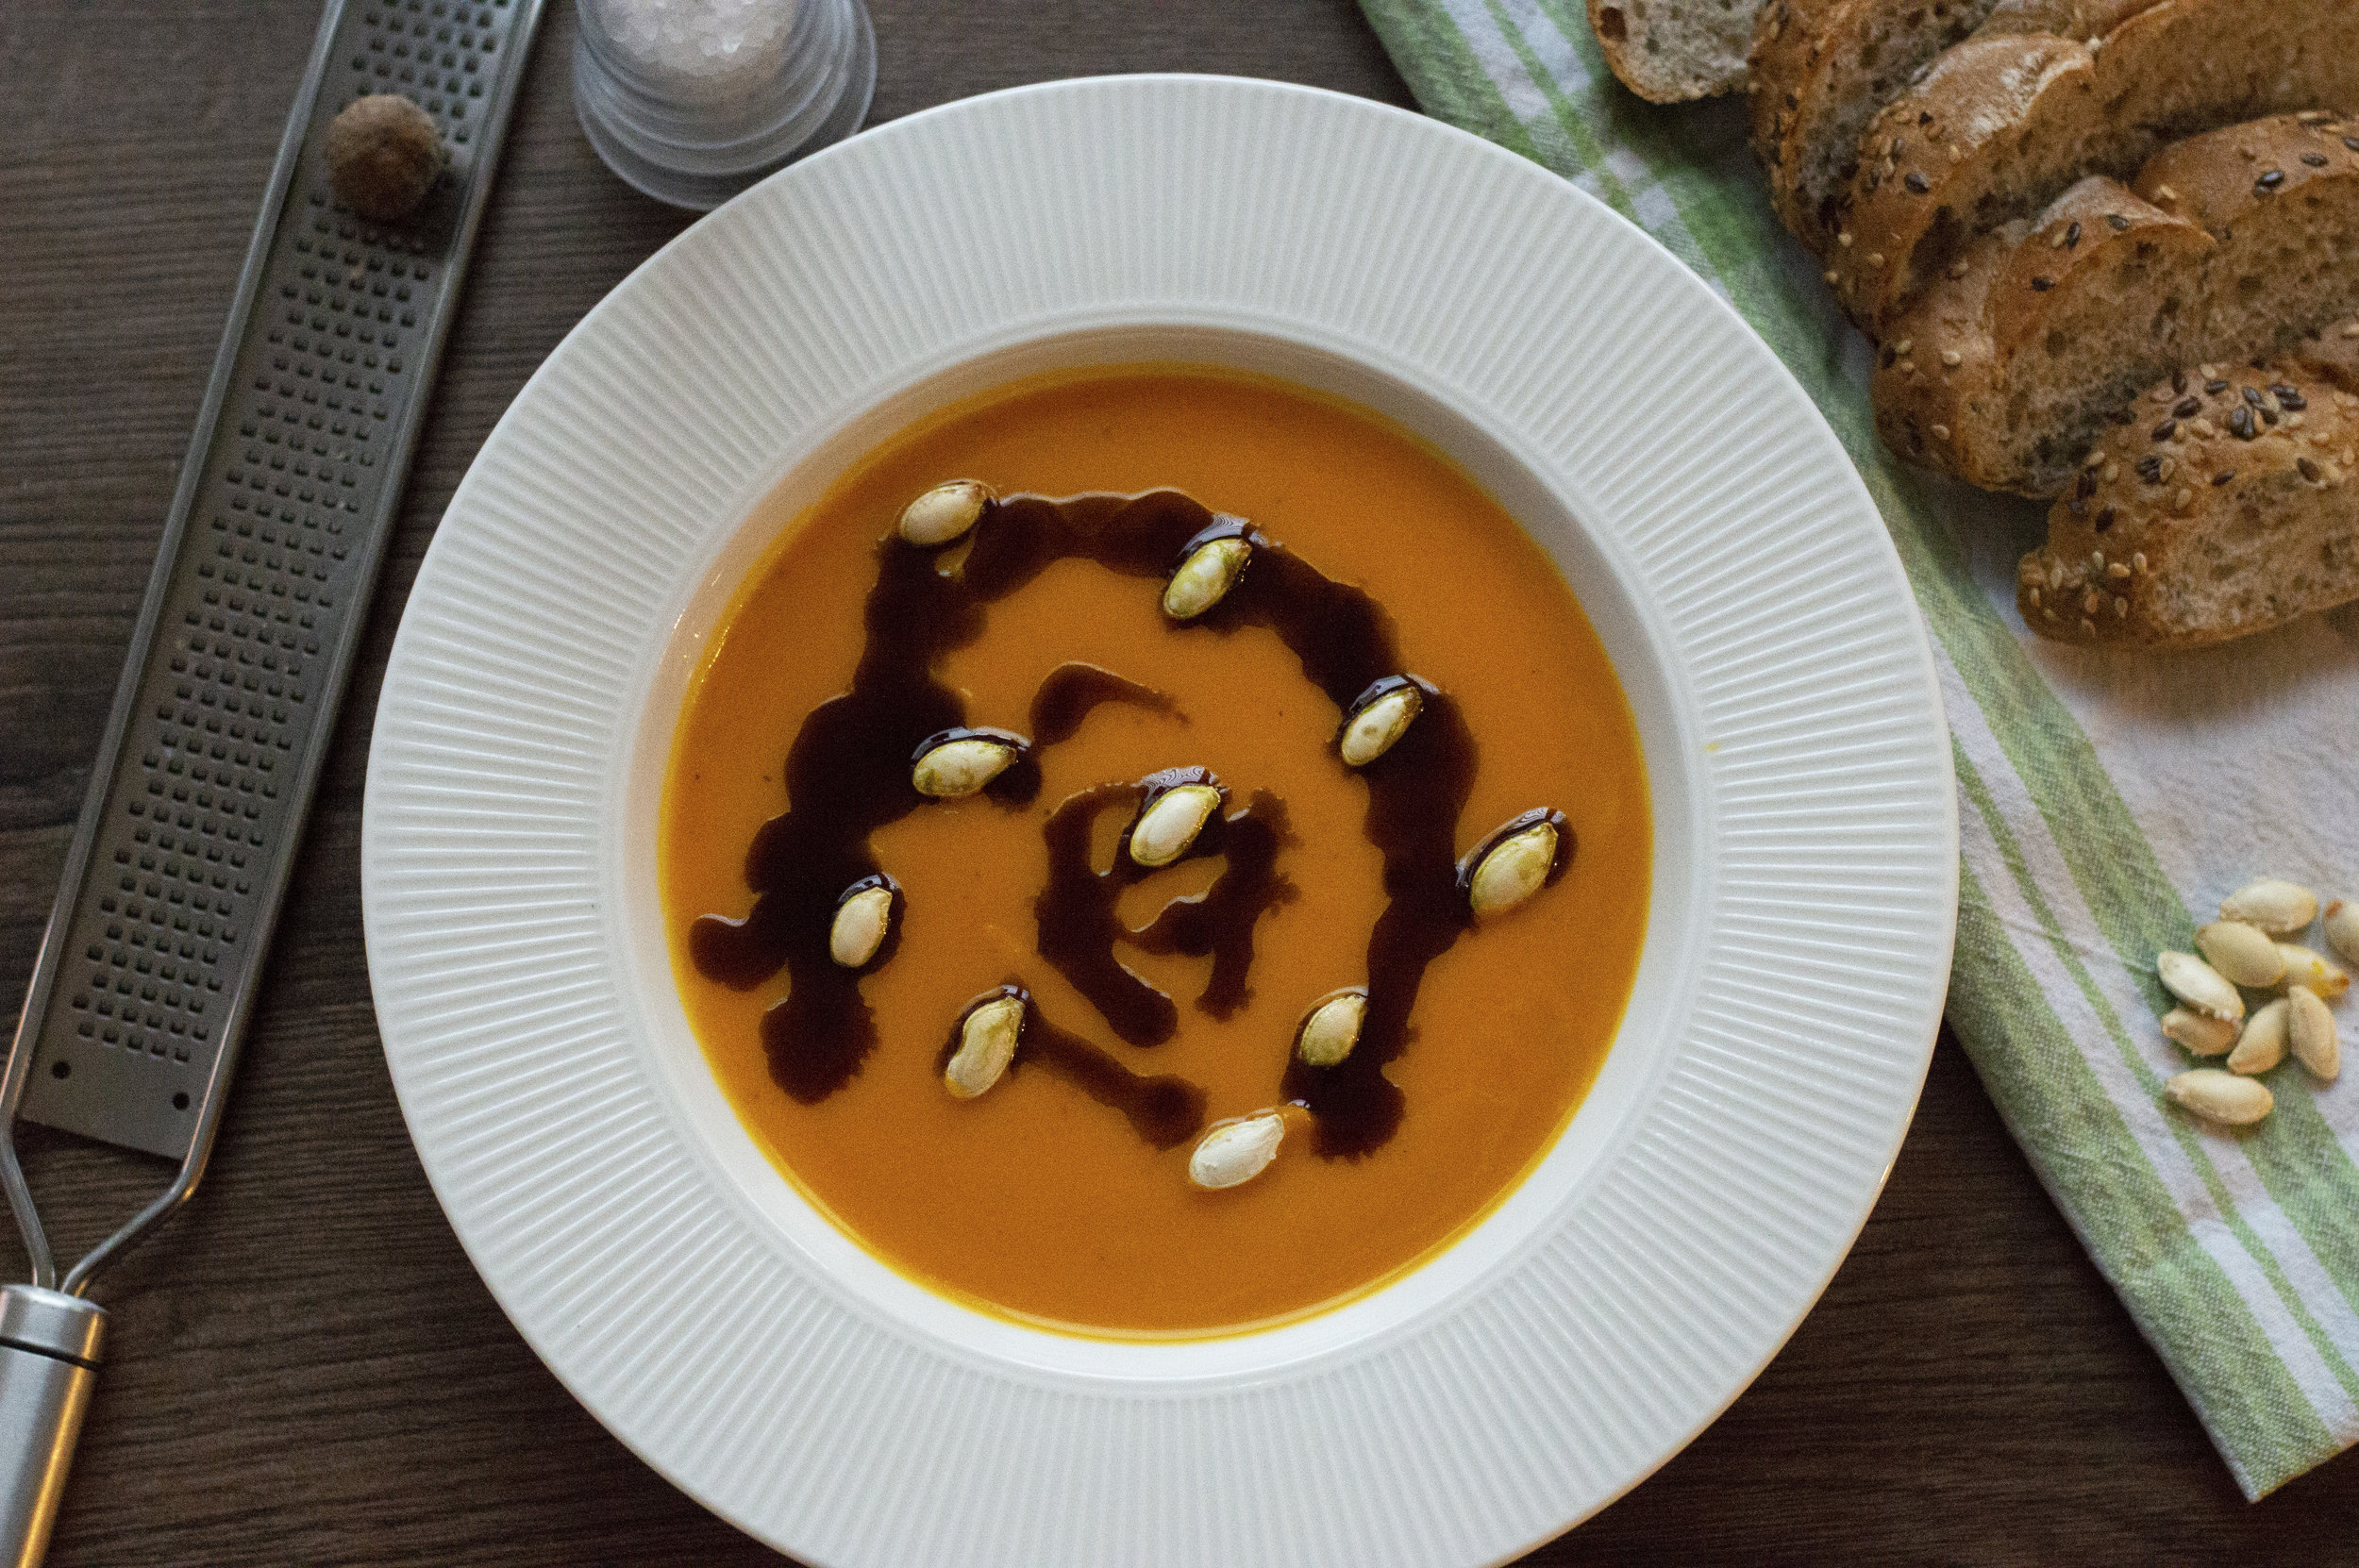 Pumpkin Soup - This simple yet impressive pumpkin soup makes for a great starter or light supper. Its sweet & hearty with a smooth texture. Eat with a side of fresh bread for a more wholesome meal or try with a sprinkle of croutons on top. This soup is high in vitamins A & C and is also vegan!